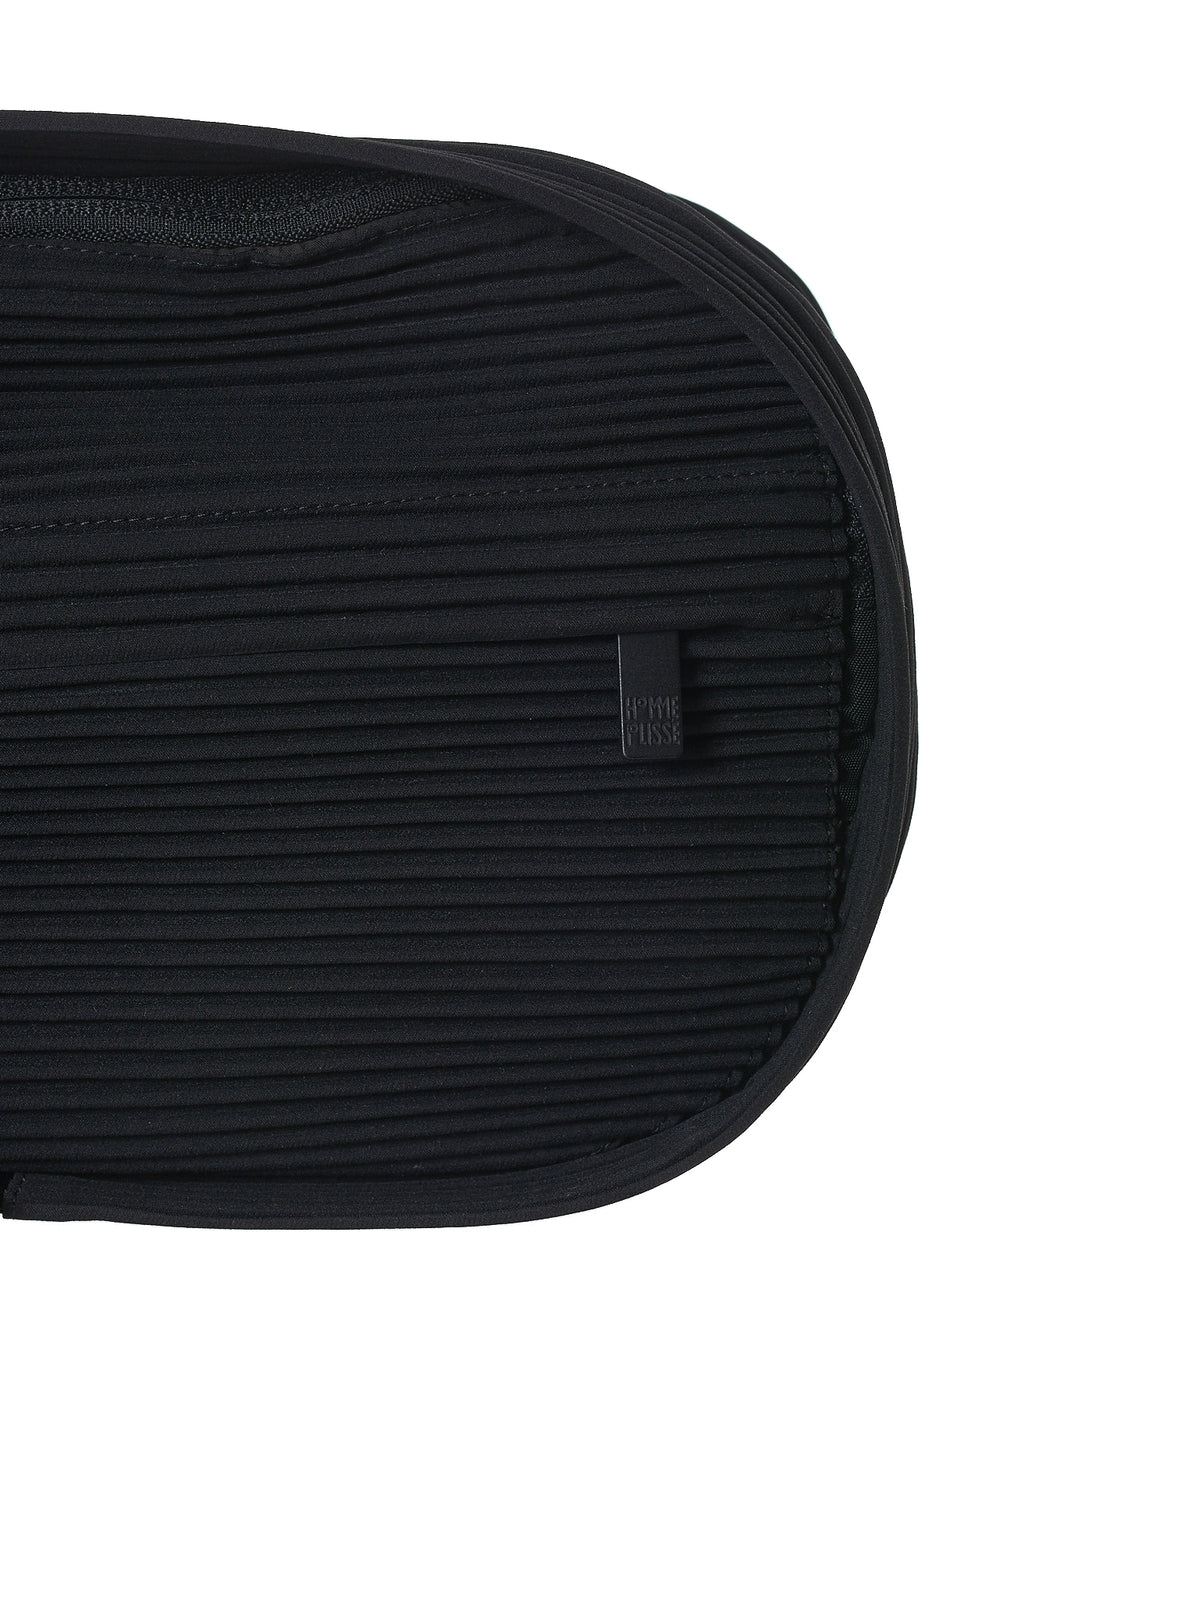 Plissé Waist Bag (HP96AG536-BLACK)